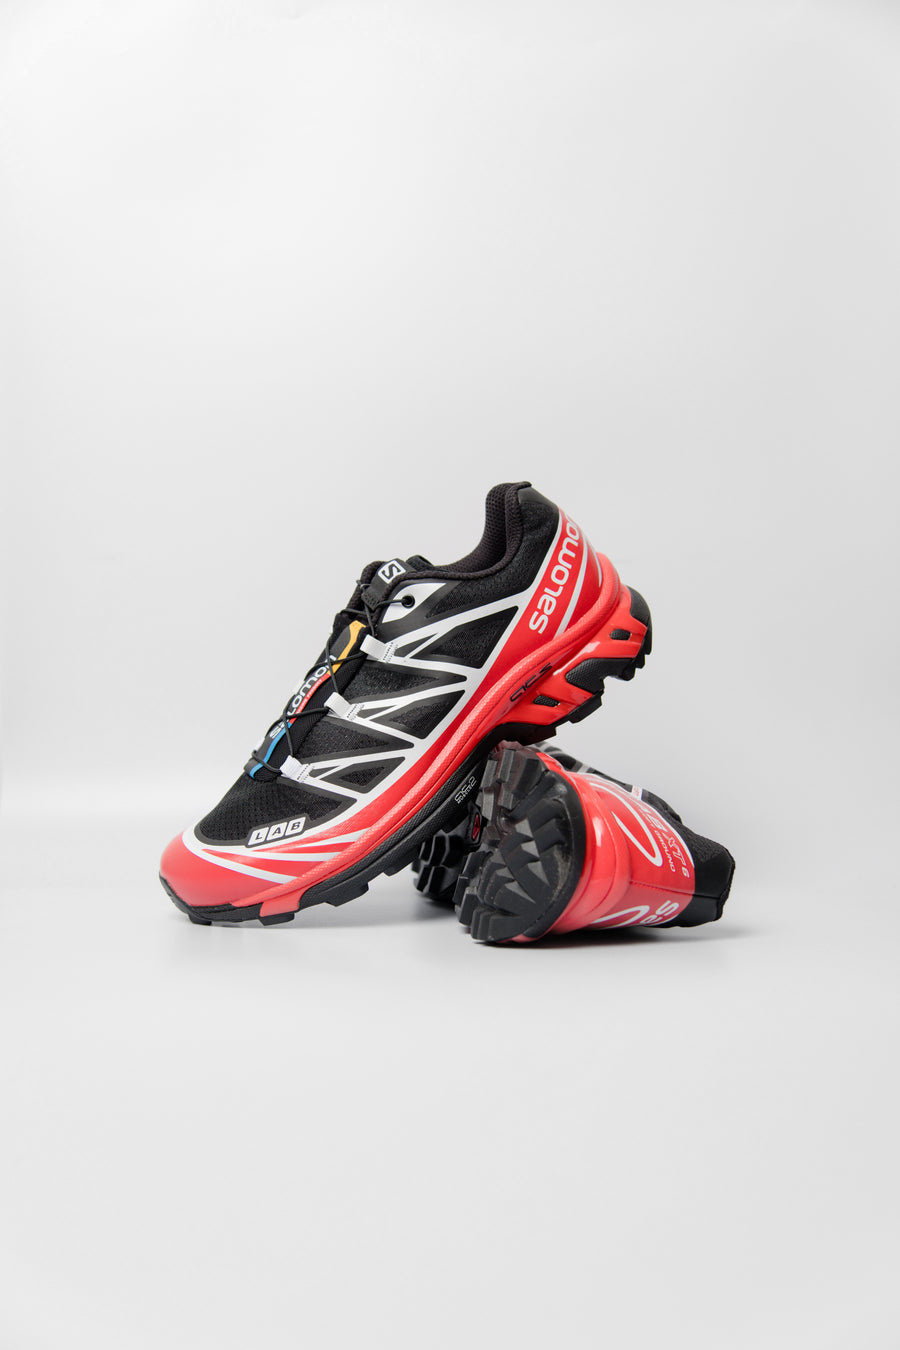 XT-6 Advanced Black/Racing Red/White L41394800